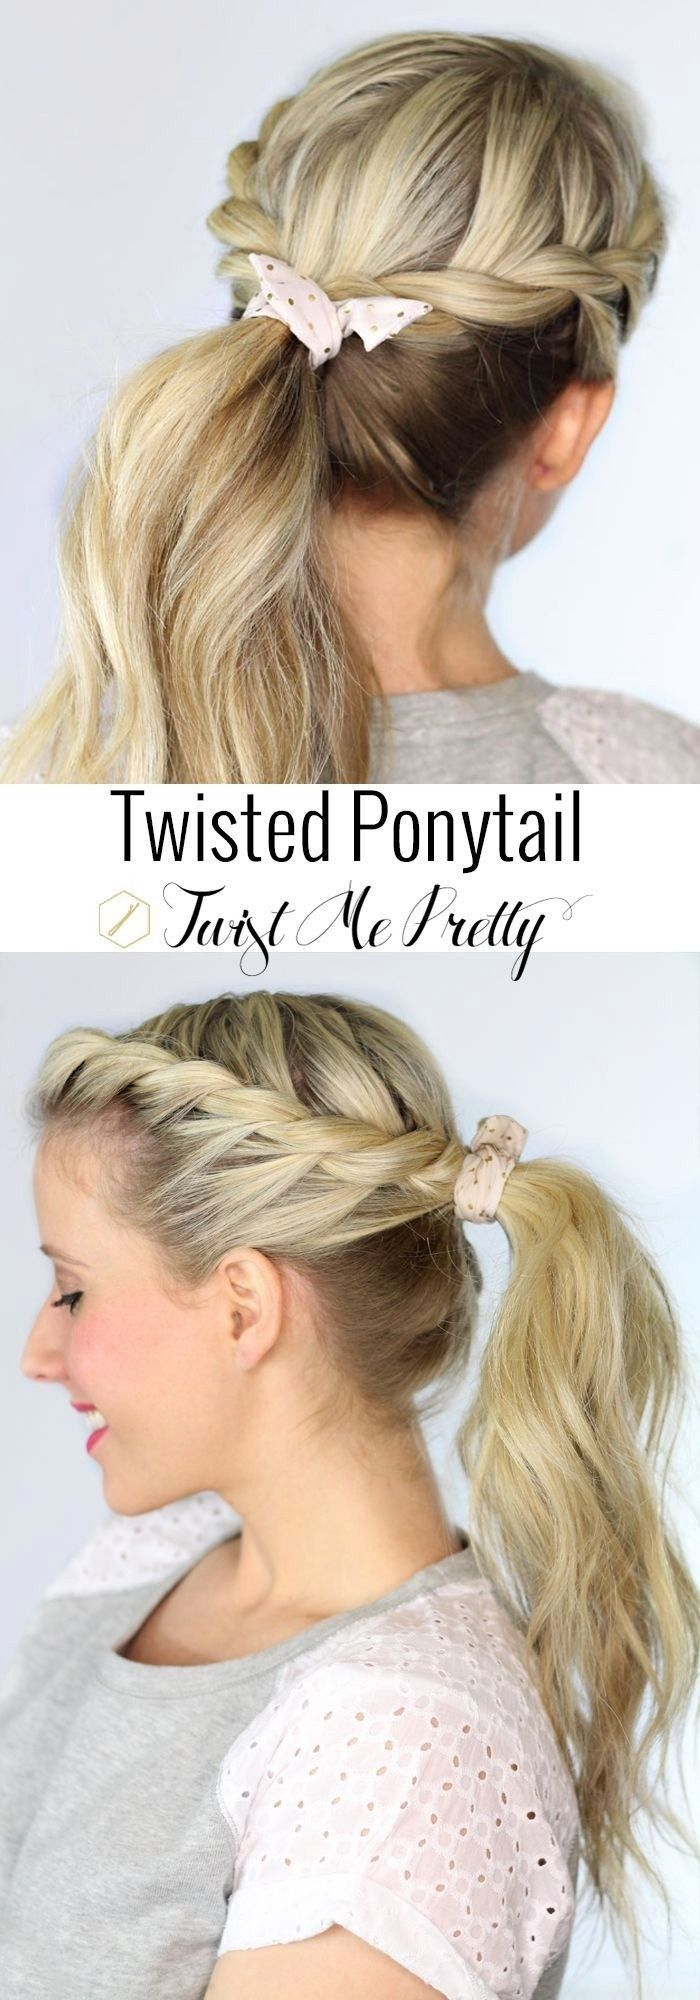 best hairmakeup images on pinterest hairstyle ideas make up